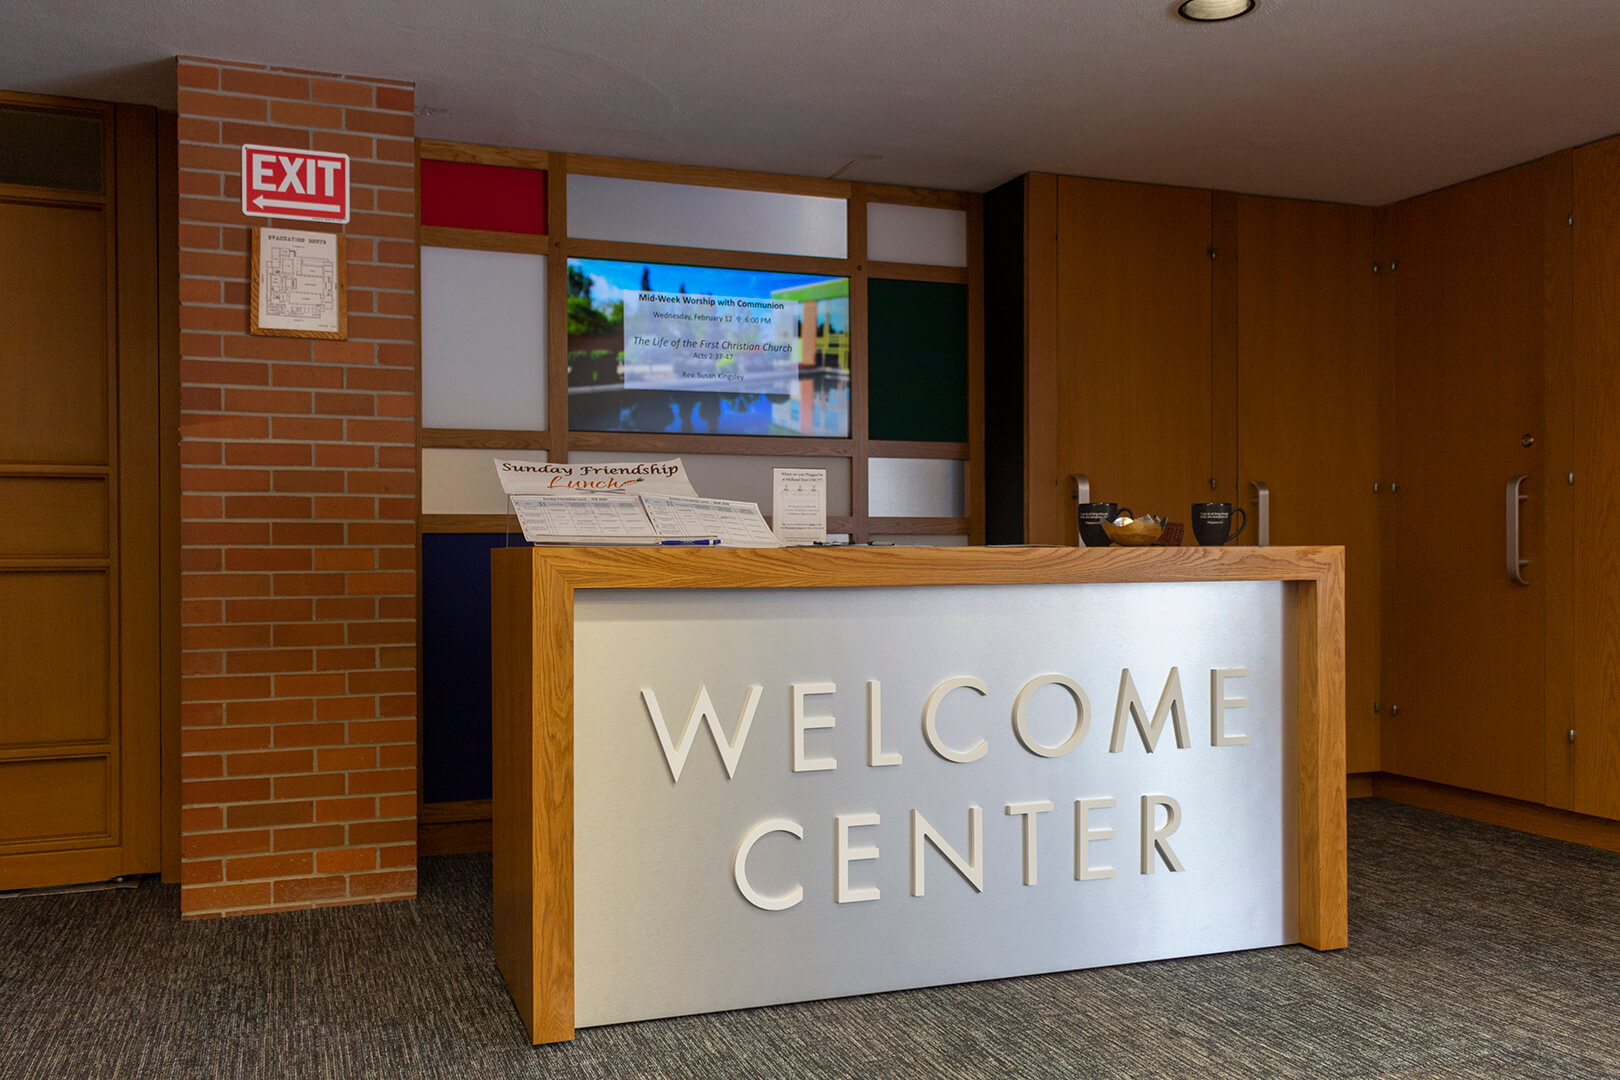 Side view of welcome center, showing table and decorative backdrop